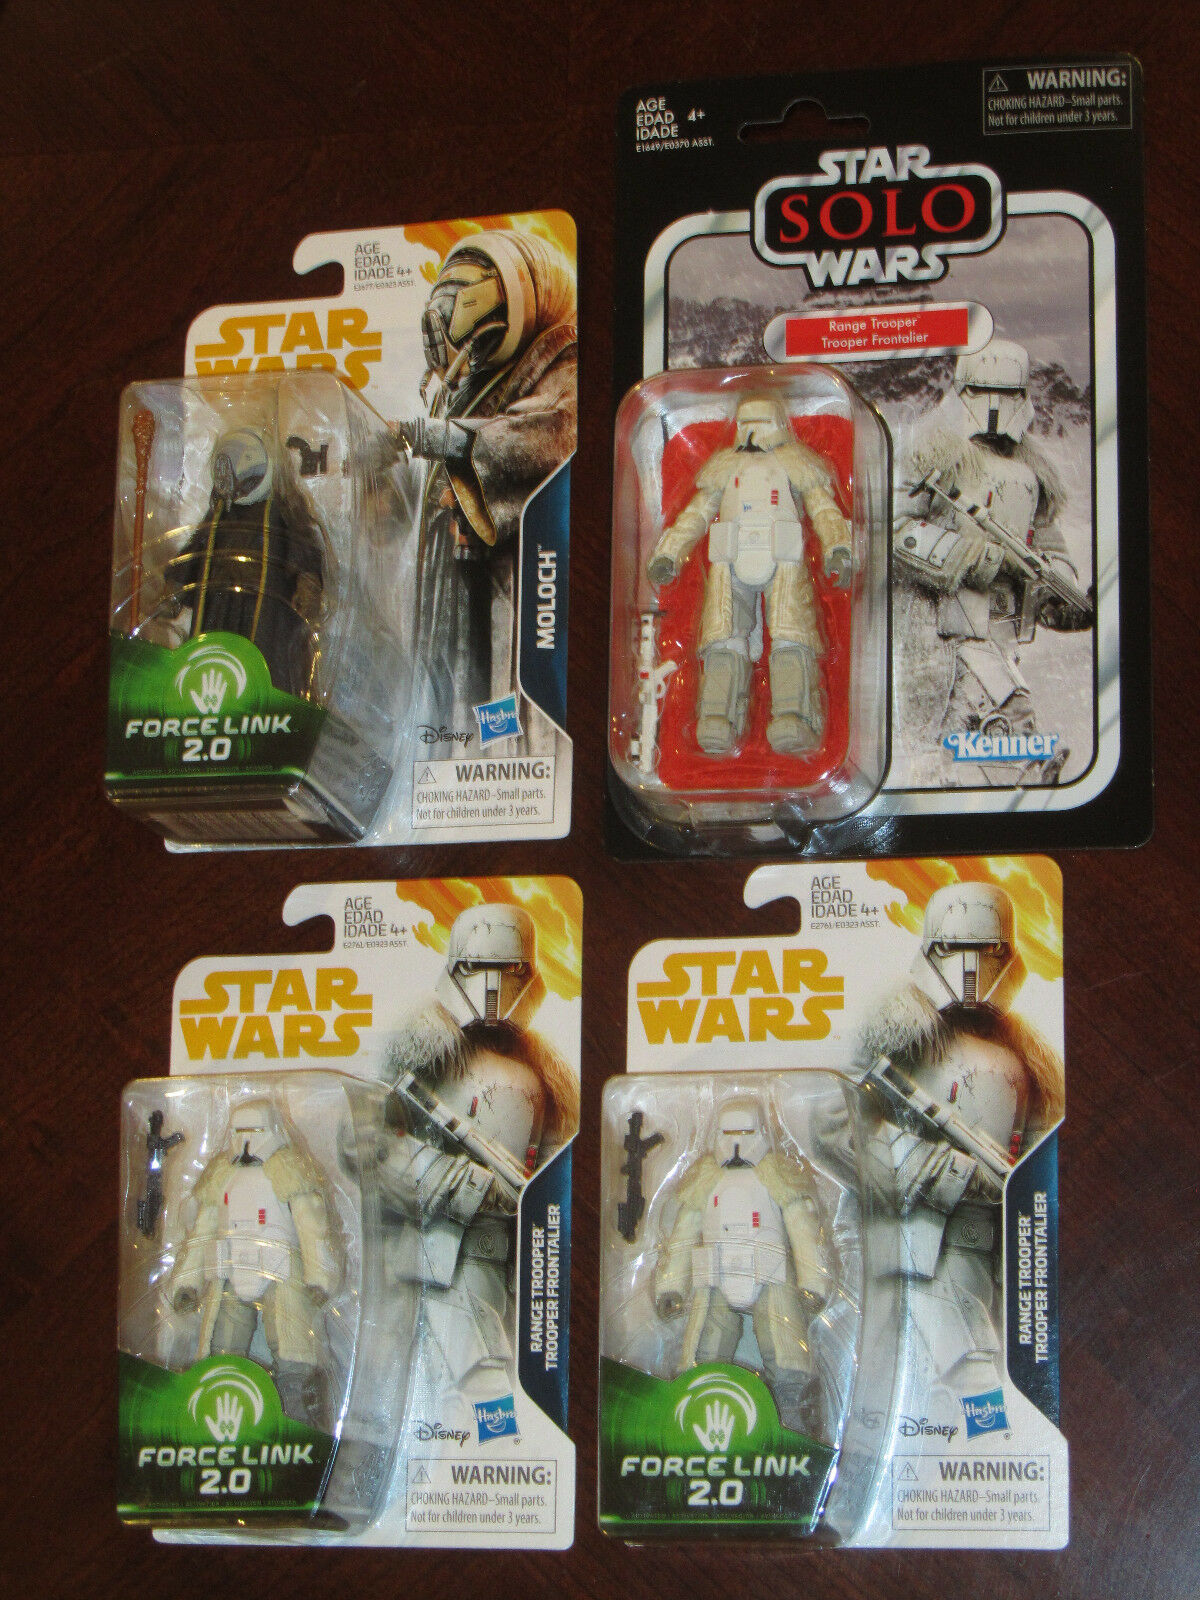 Star Wars Force Link 2.0 & Vintage Collection VC128 Range Trooper 3x & Moloch